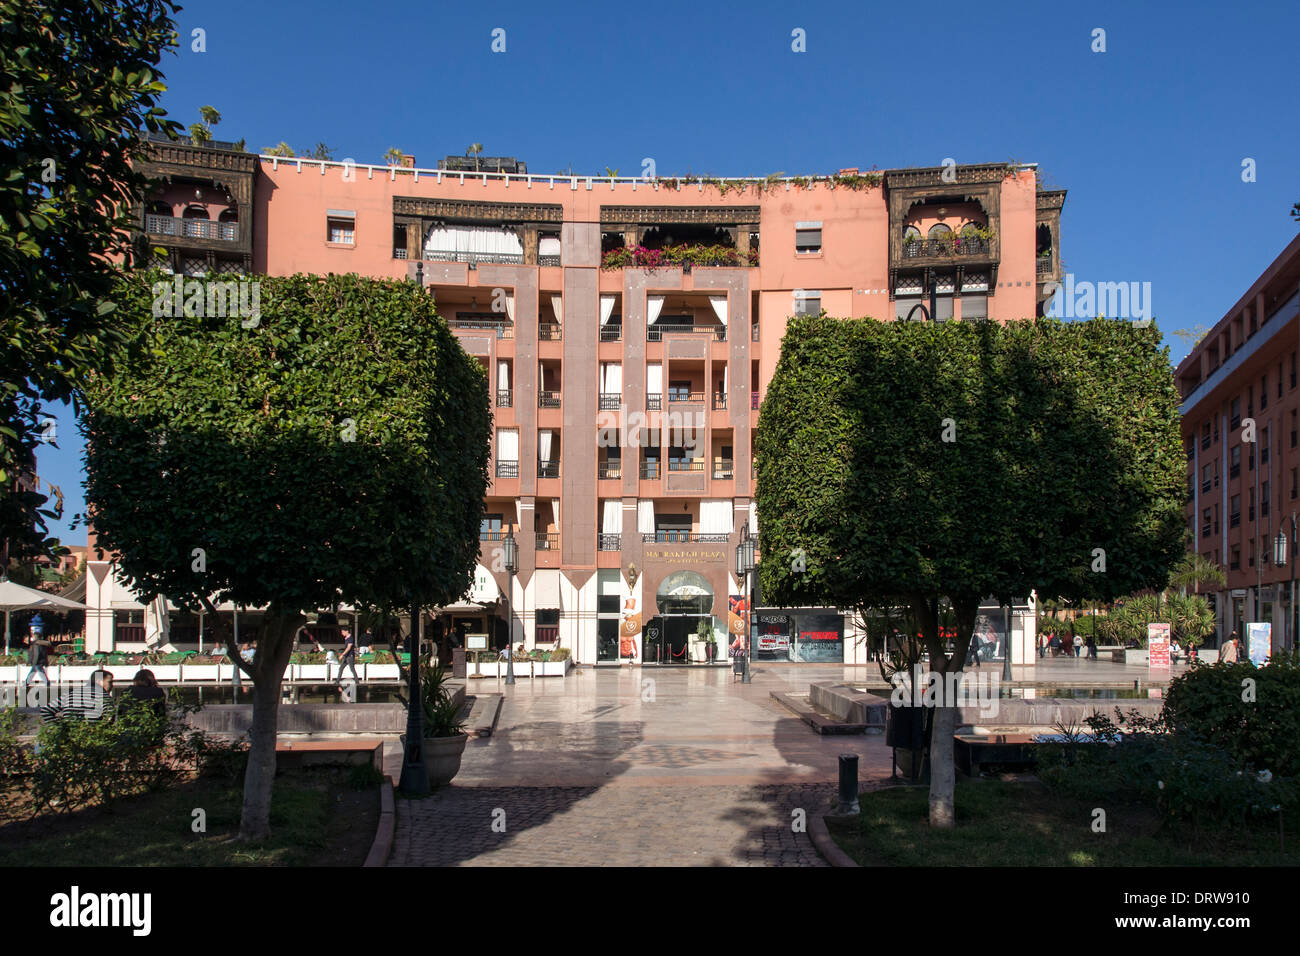 Western style offices in Plaza at Place du 16 Novembre, Gueliz, Marrakech (Marrakesh) Stock Photo